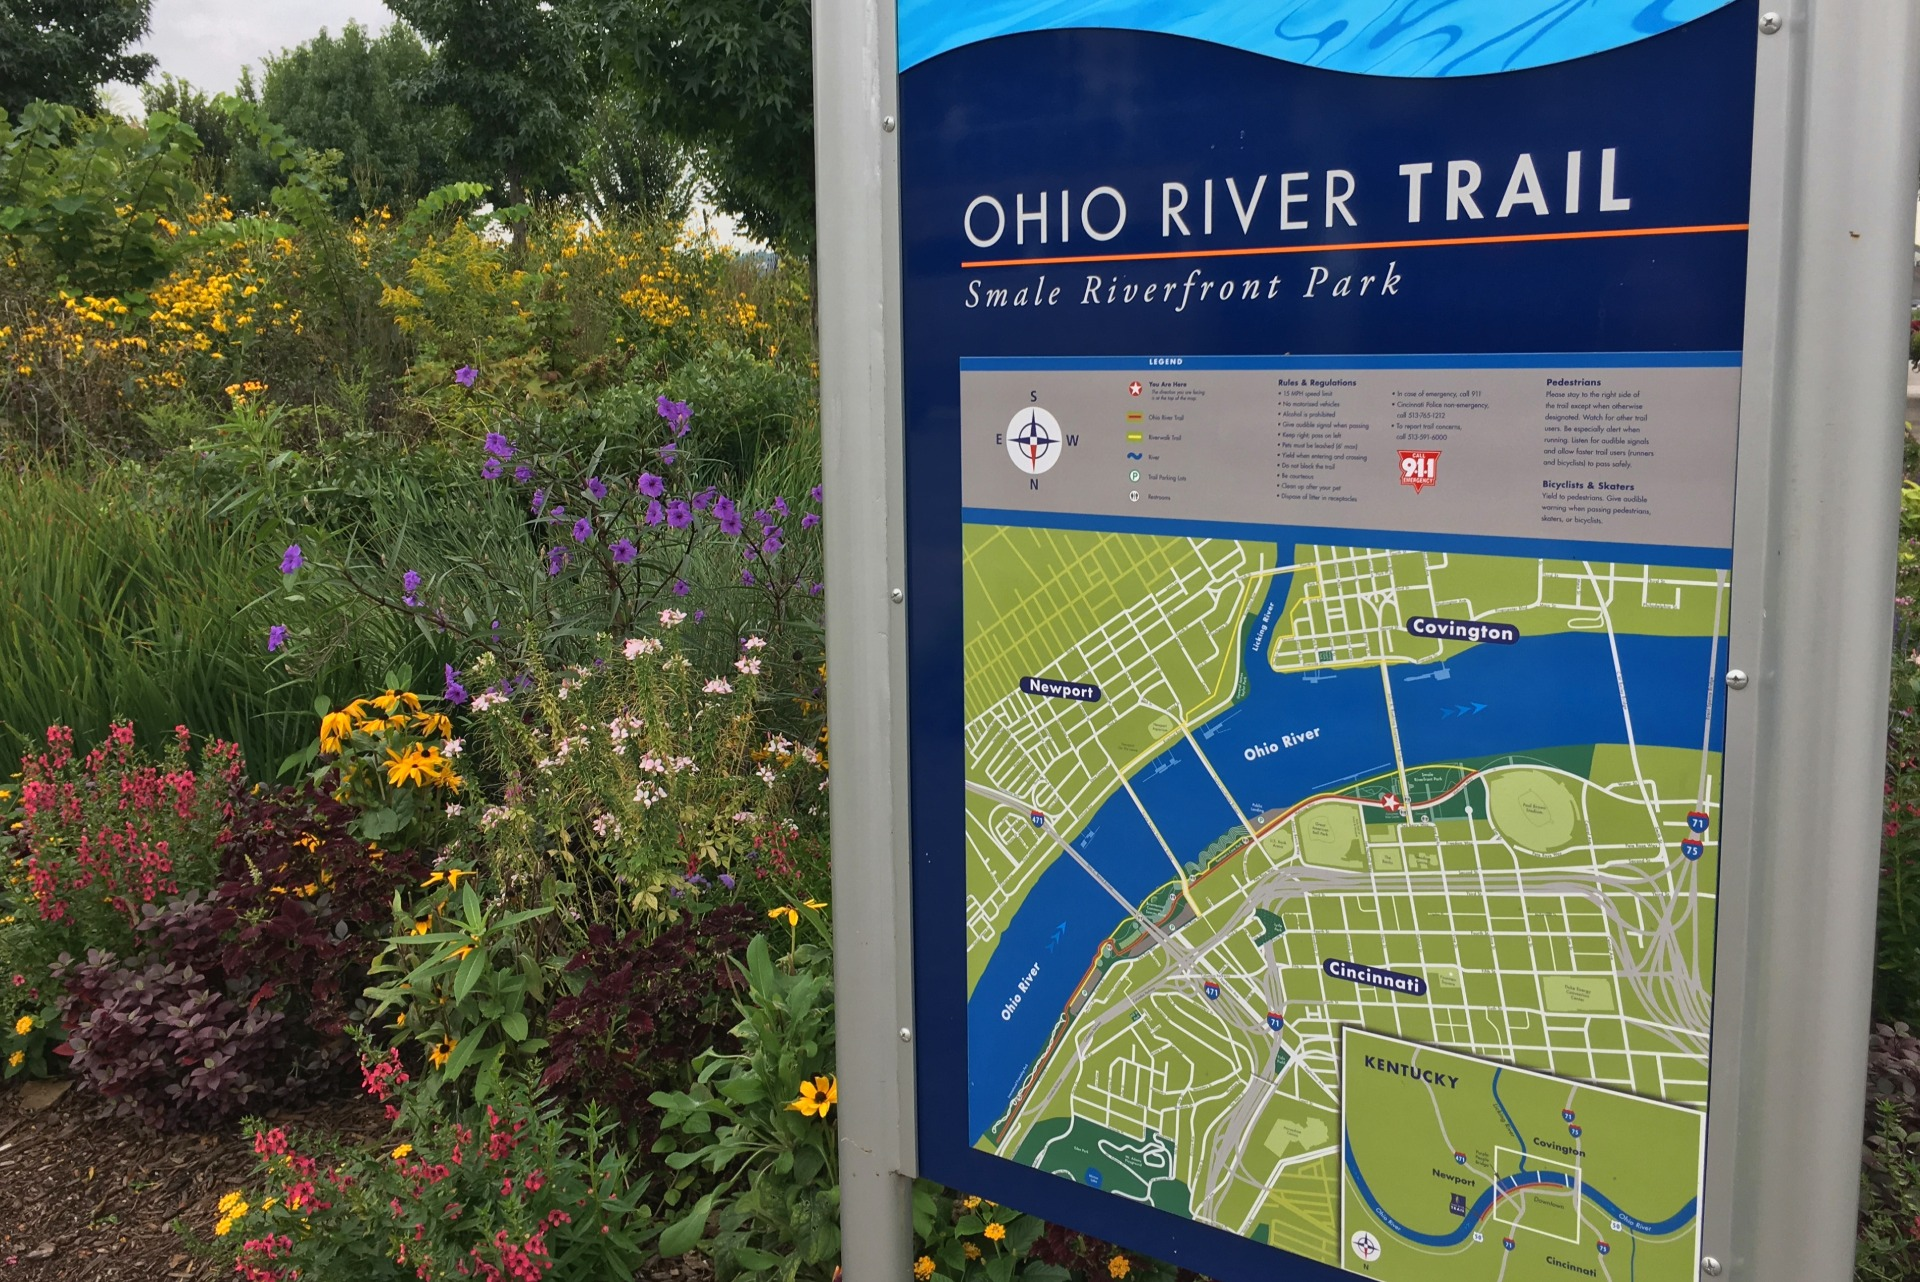 Snale Riverfront Park on the Ohio River